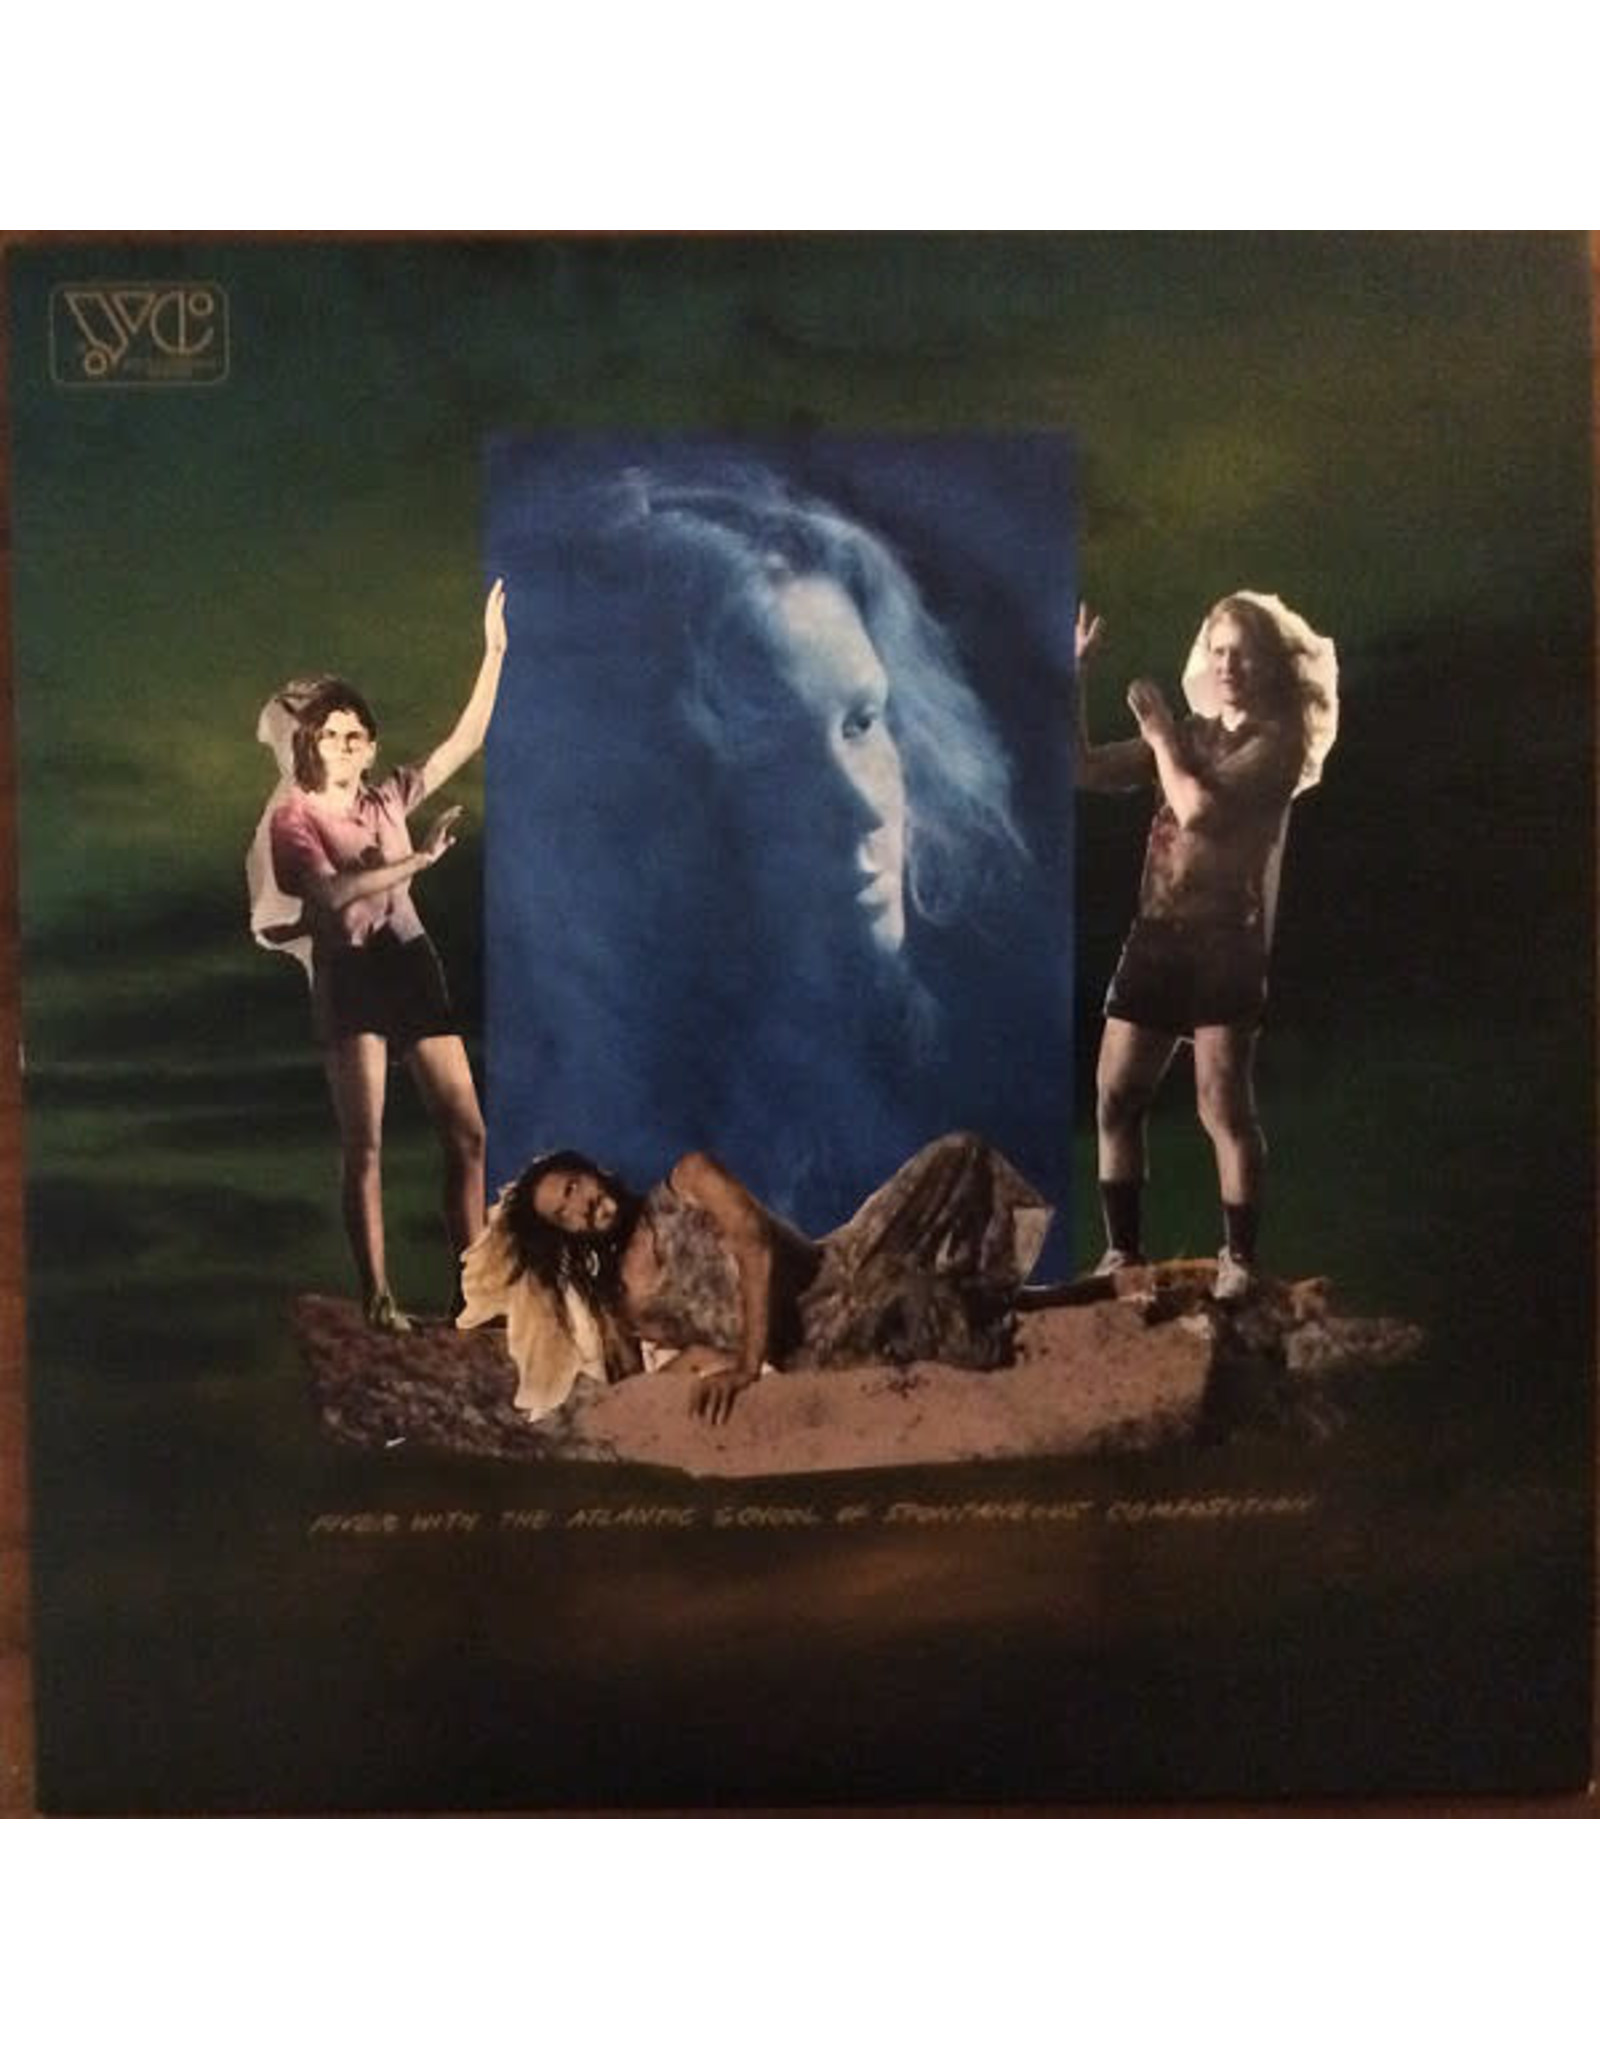 Fiver - Fiver With The Atlantic School of Spontaneous Composition LP